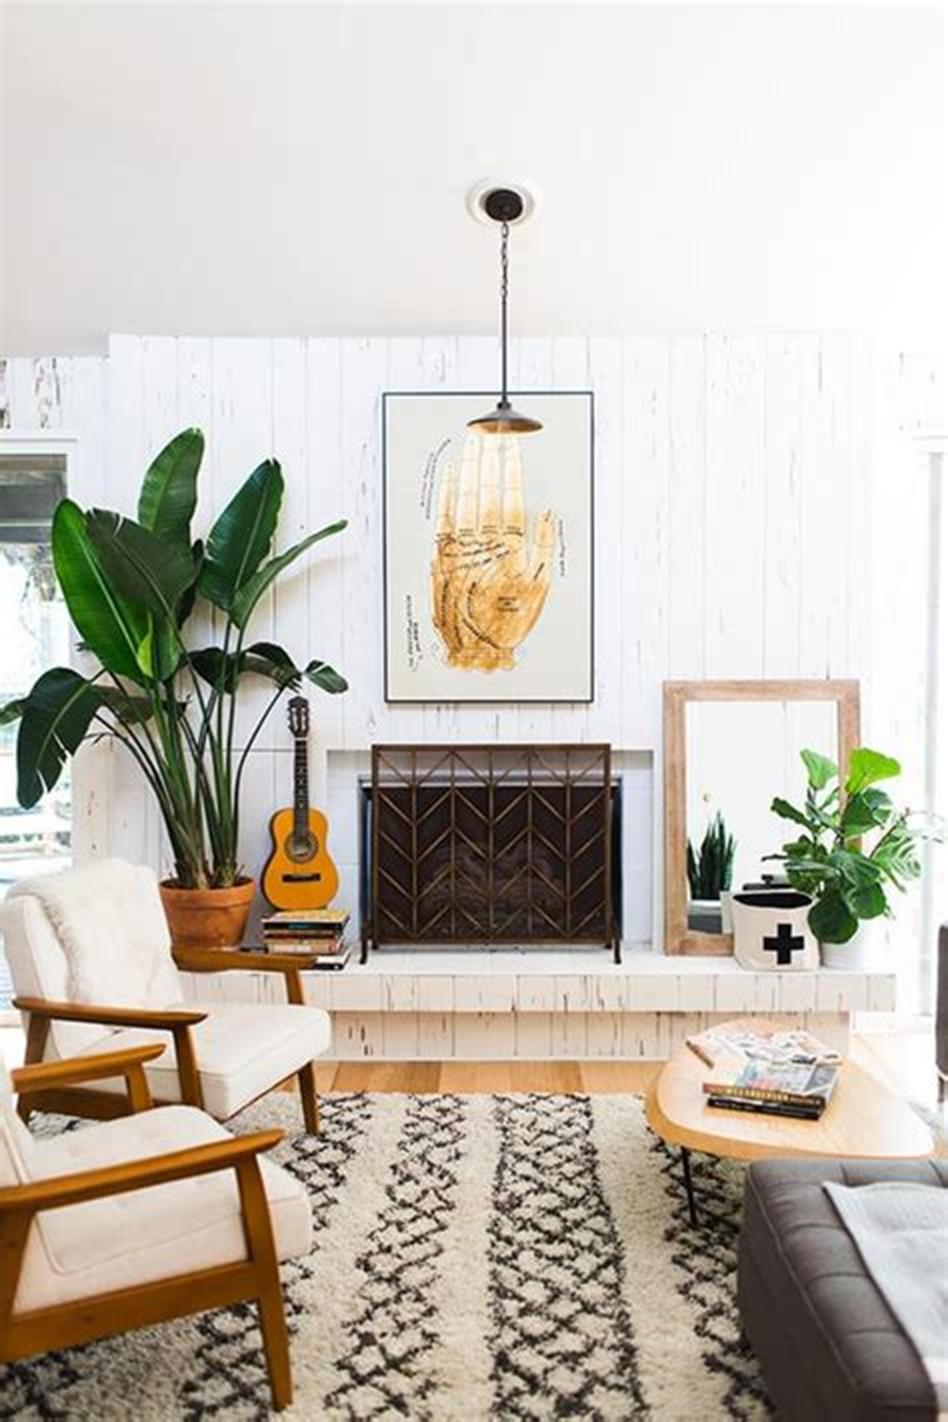 47 Great Mid Century Modern Living room Design and Decorating Ideas 2